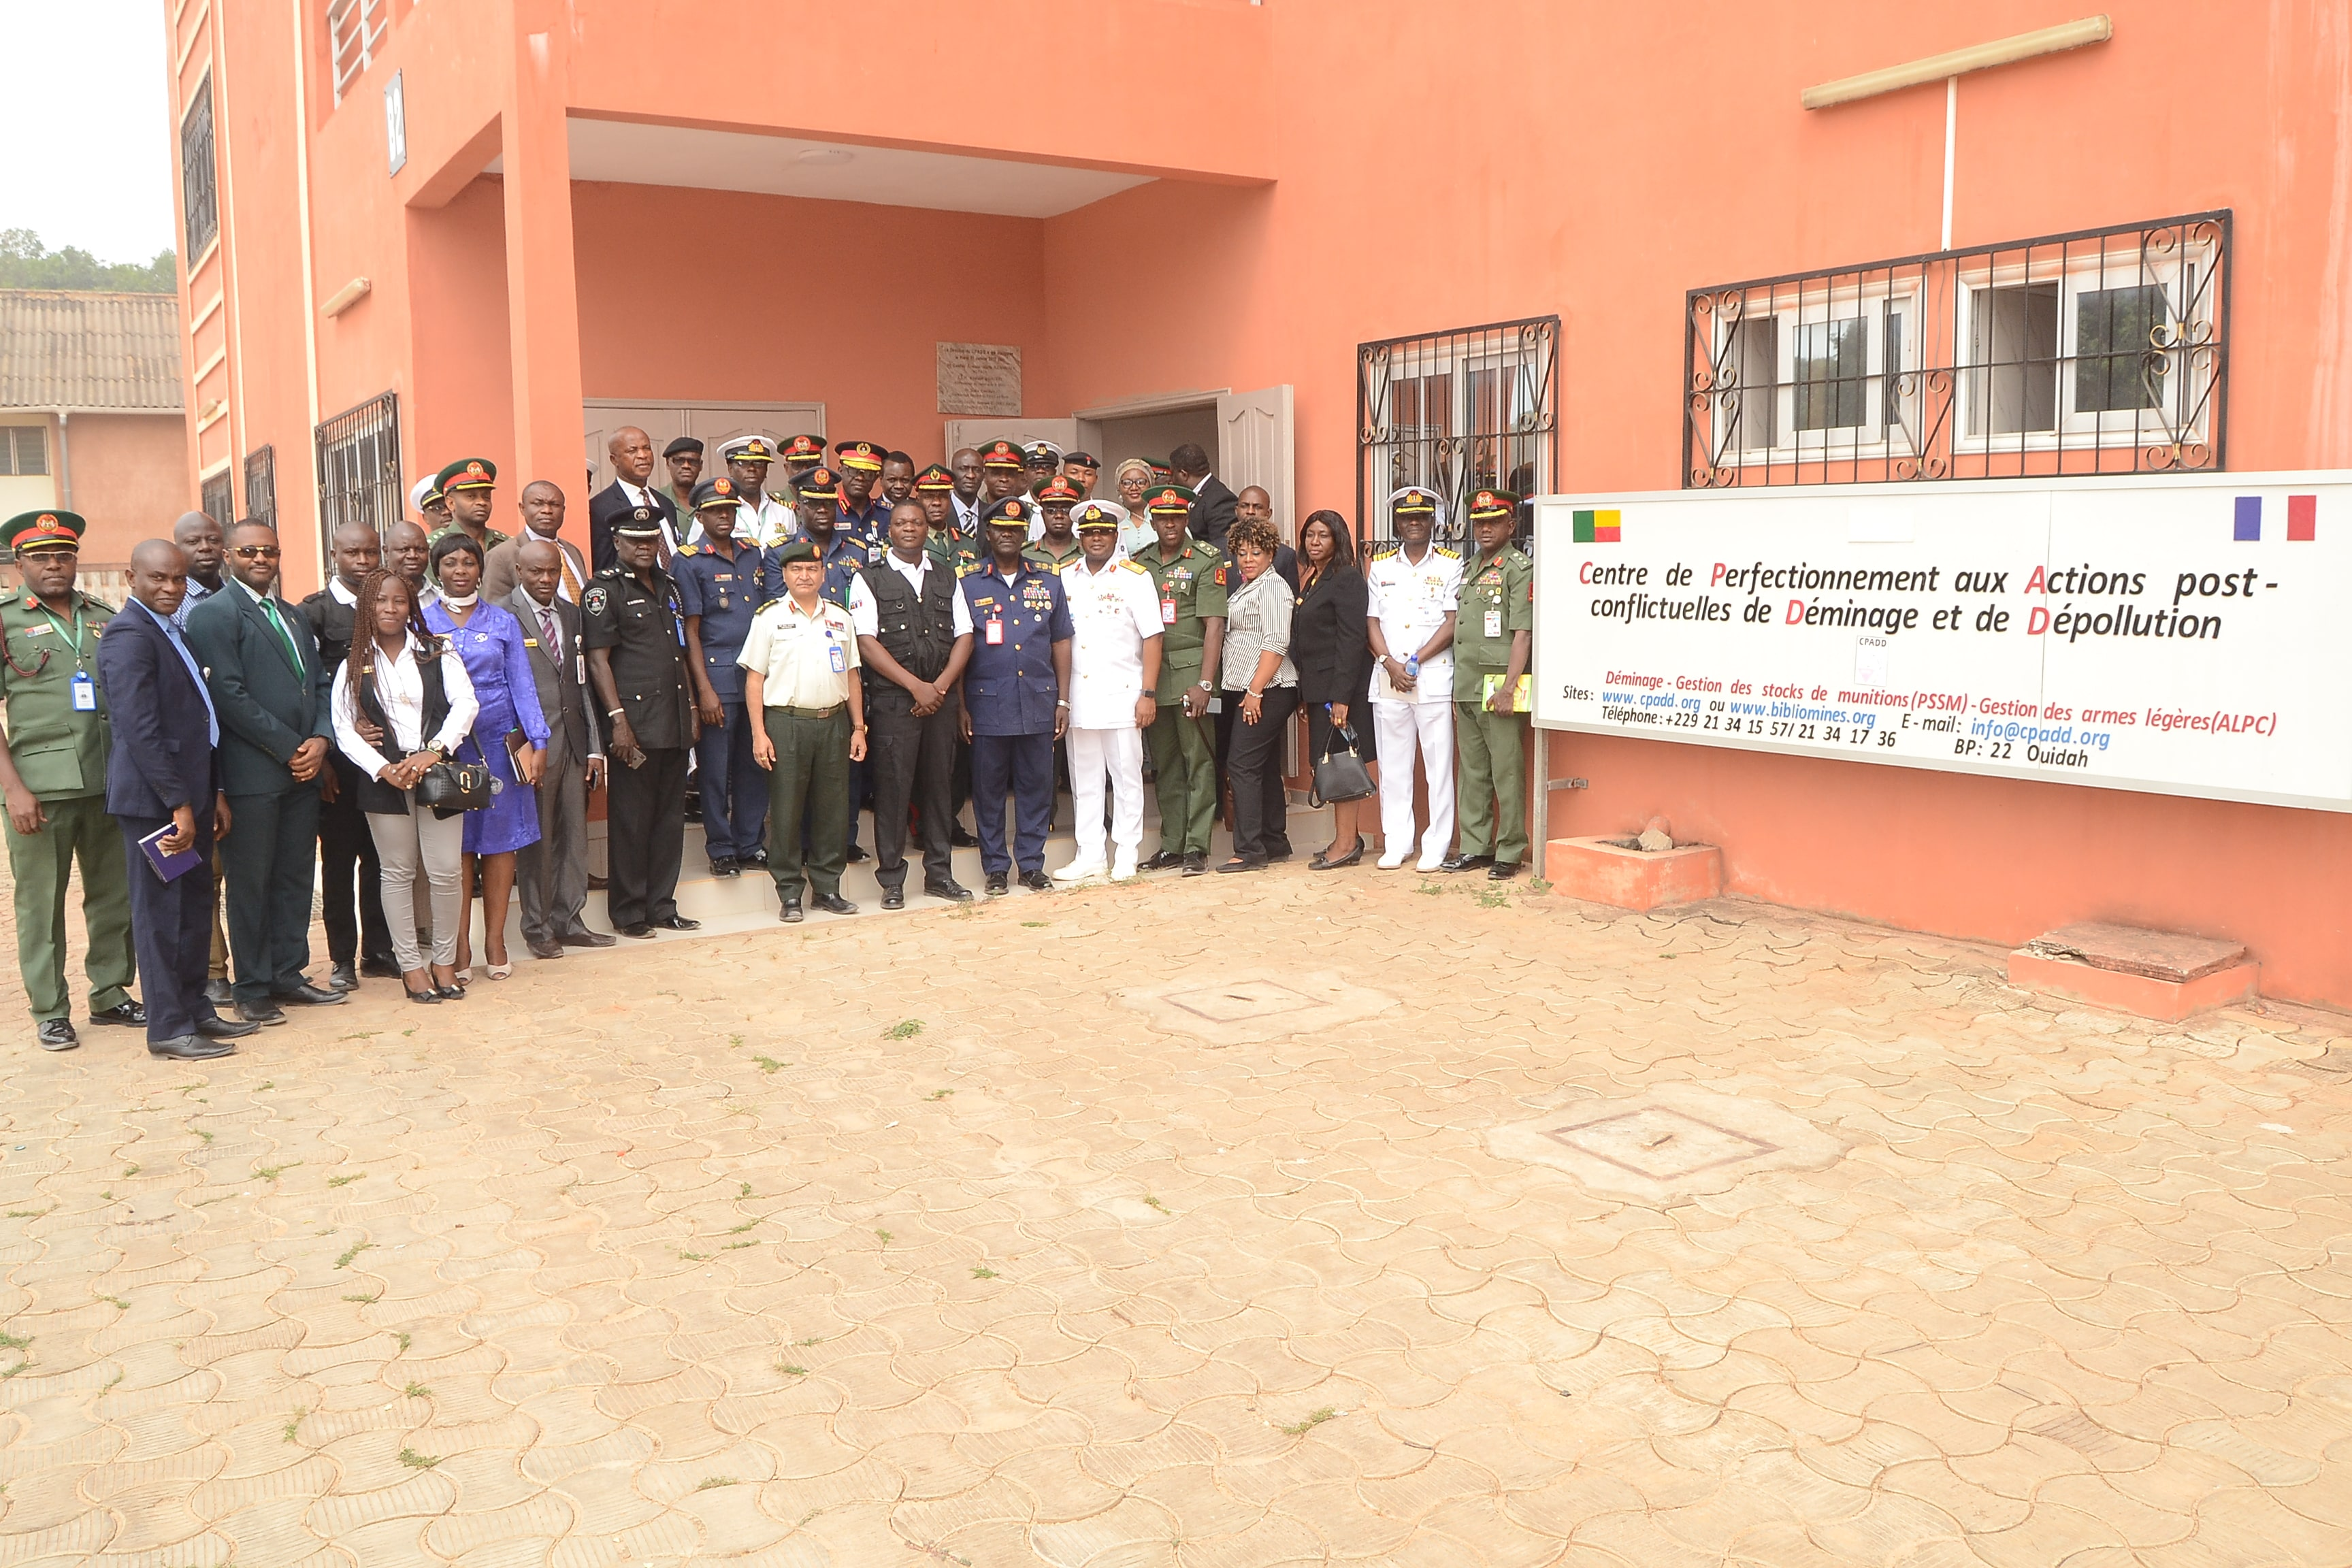 Visit of a Nigerian Armed Forces delegation